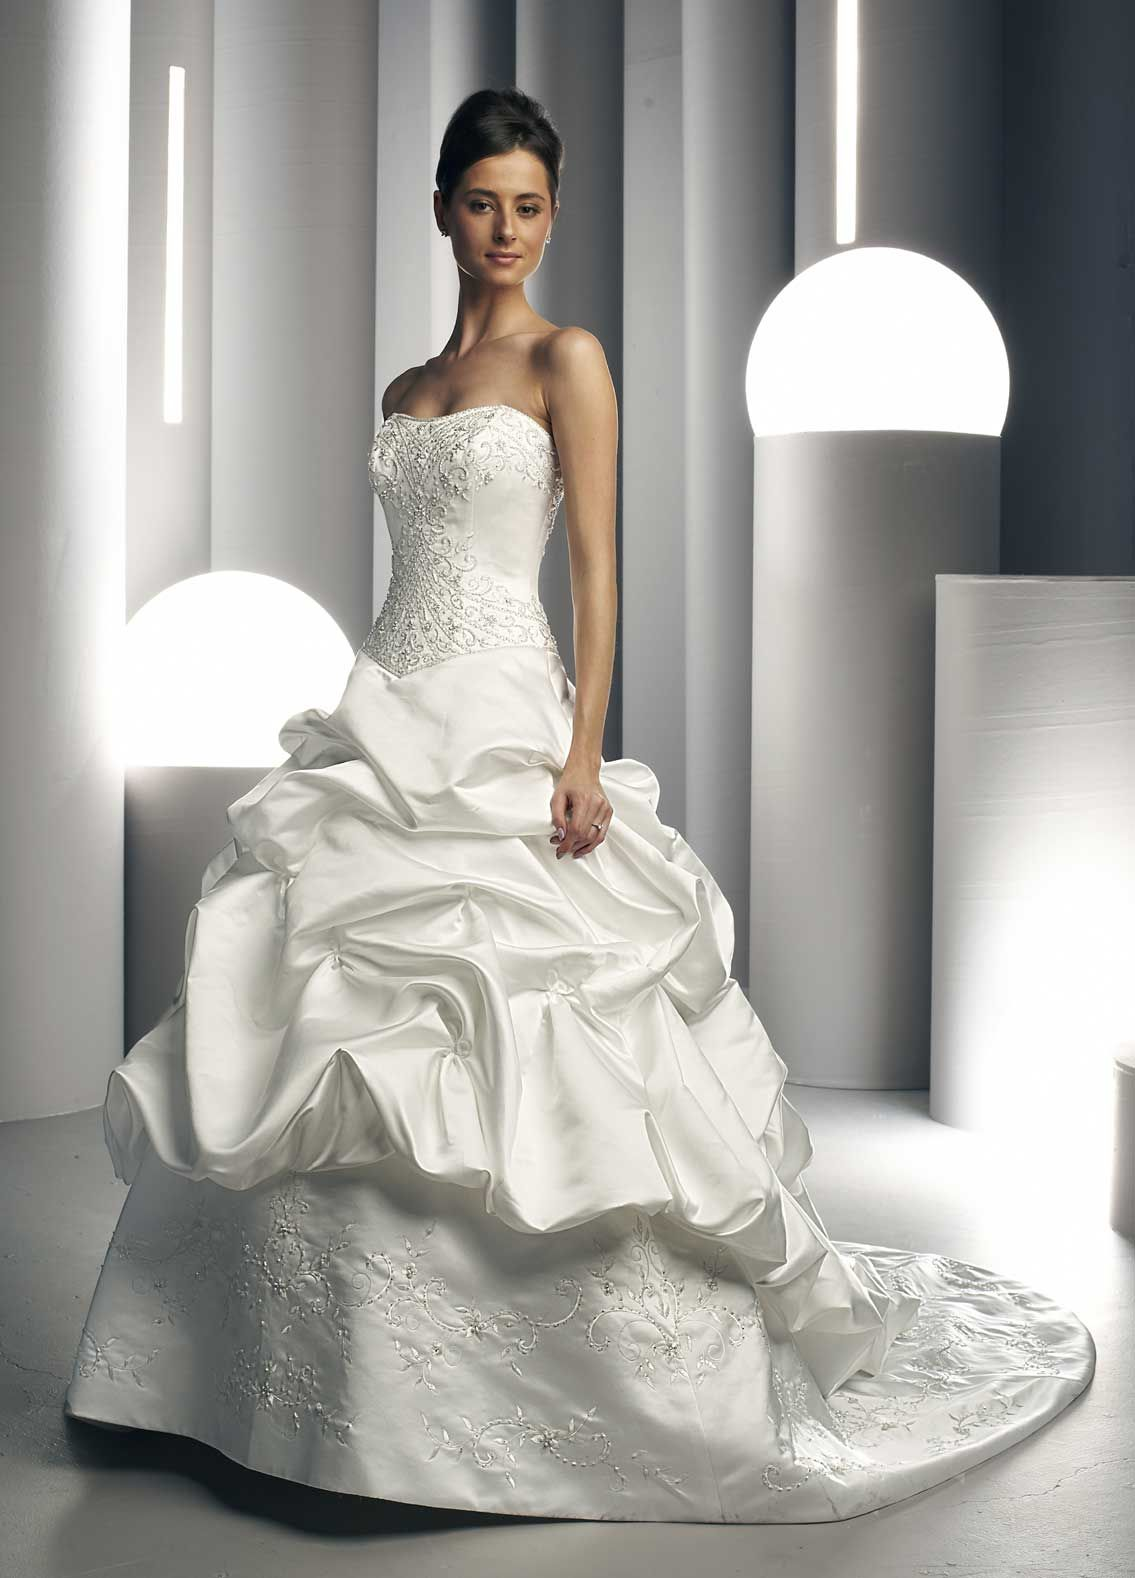 Aimee satin dress with sweetheart neckline bodice adorned with